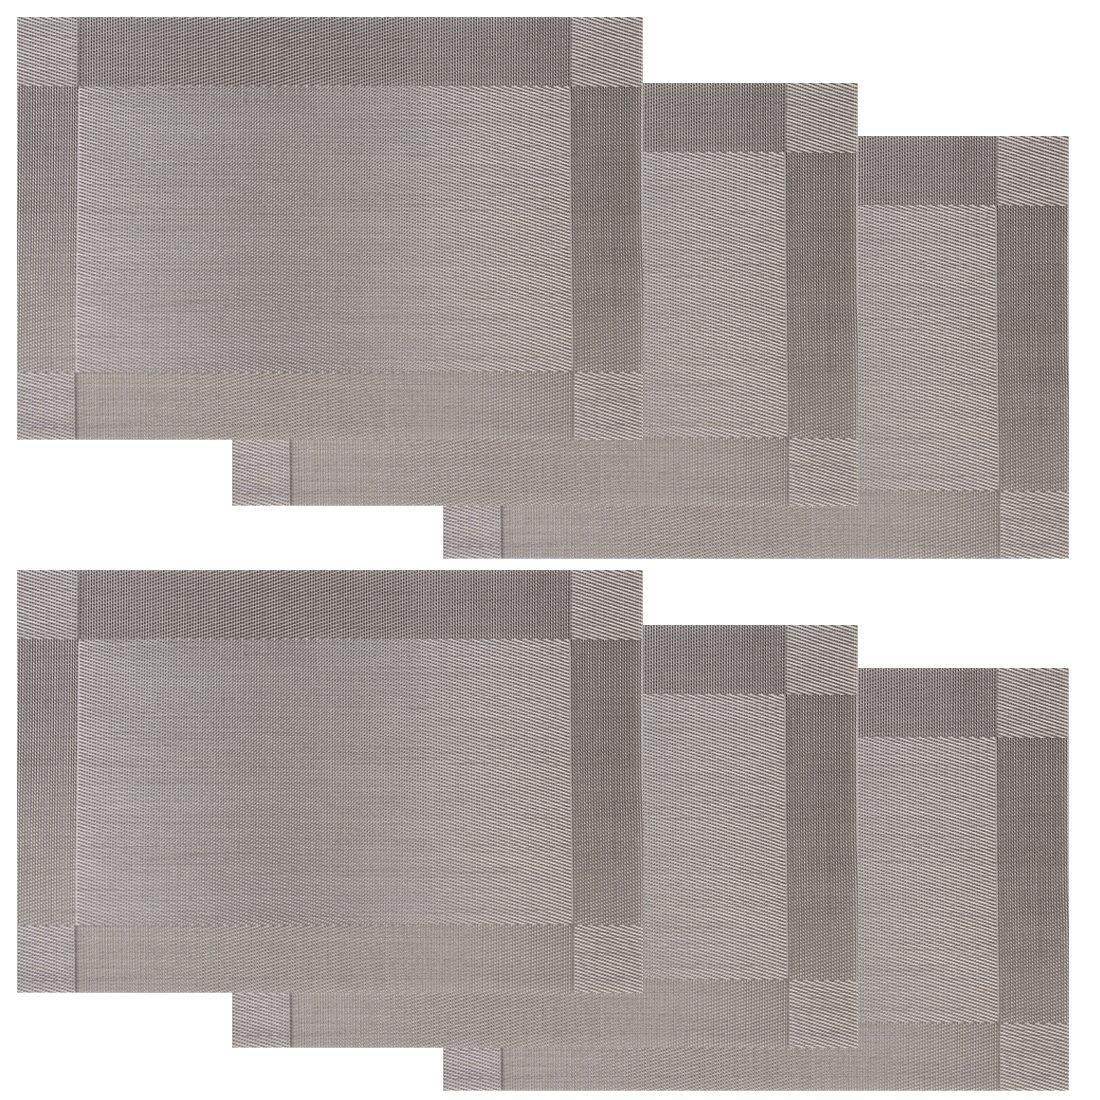 Online Store Borlan Vinyl Grey Placemats Heat Resistant  : borlan vinyl grey placemats heat resistant dining table mats non slip washable place mats set of 6 grey from www.top1price.com size 1100 x 1100 jpeg 441kB